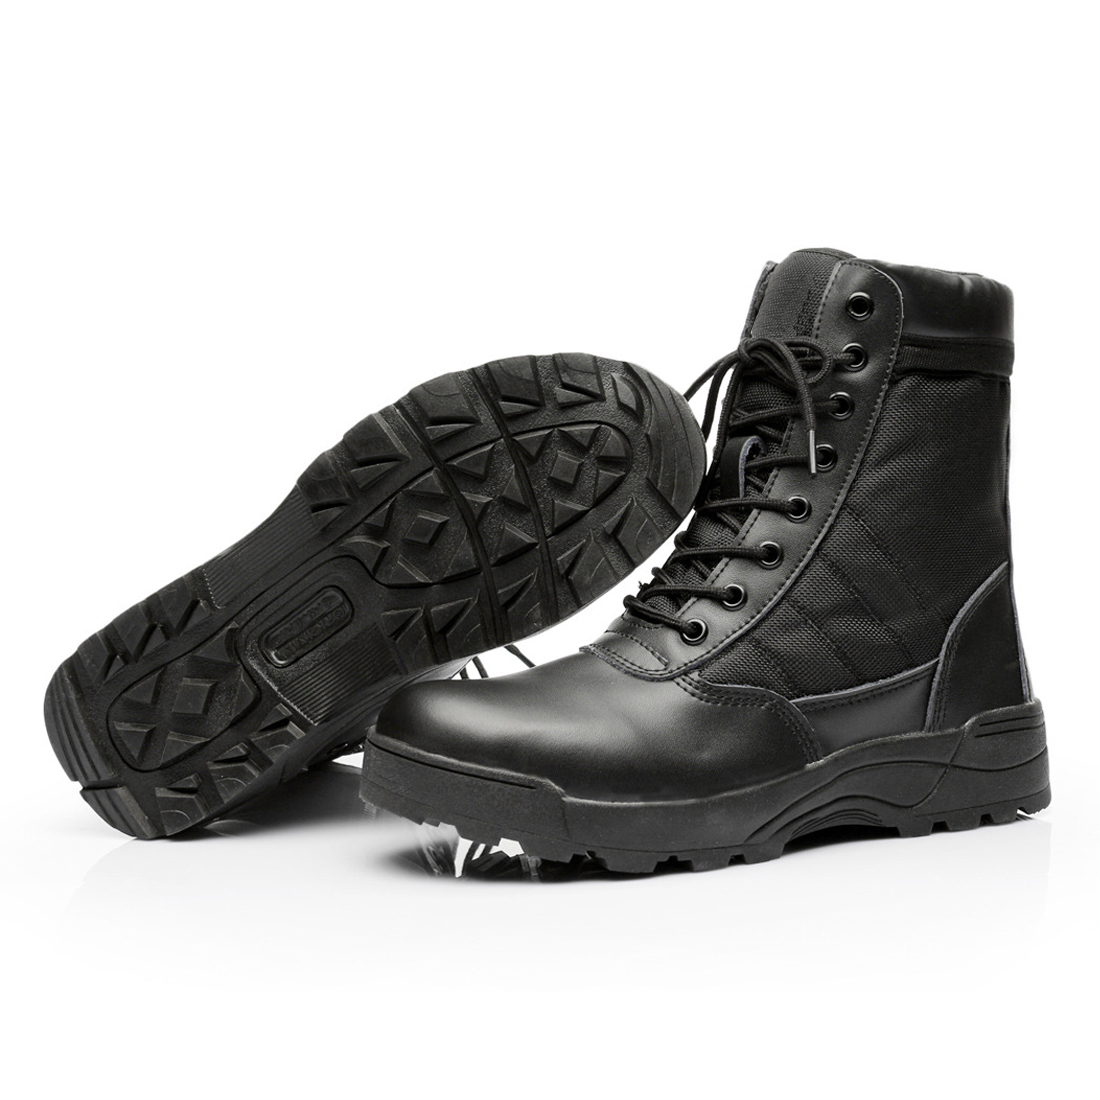 ФОТО 2017 Winter/autumn High Quality Brand Men Military Boots Special Forces Tactical Desert Combat Boats Outdoor Shoes Snow Boots